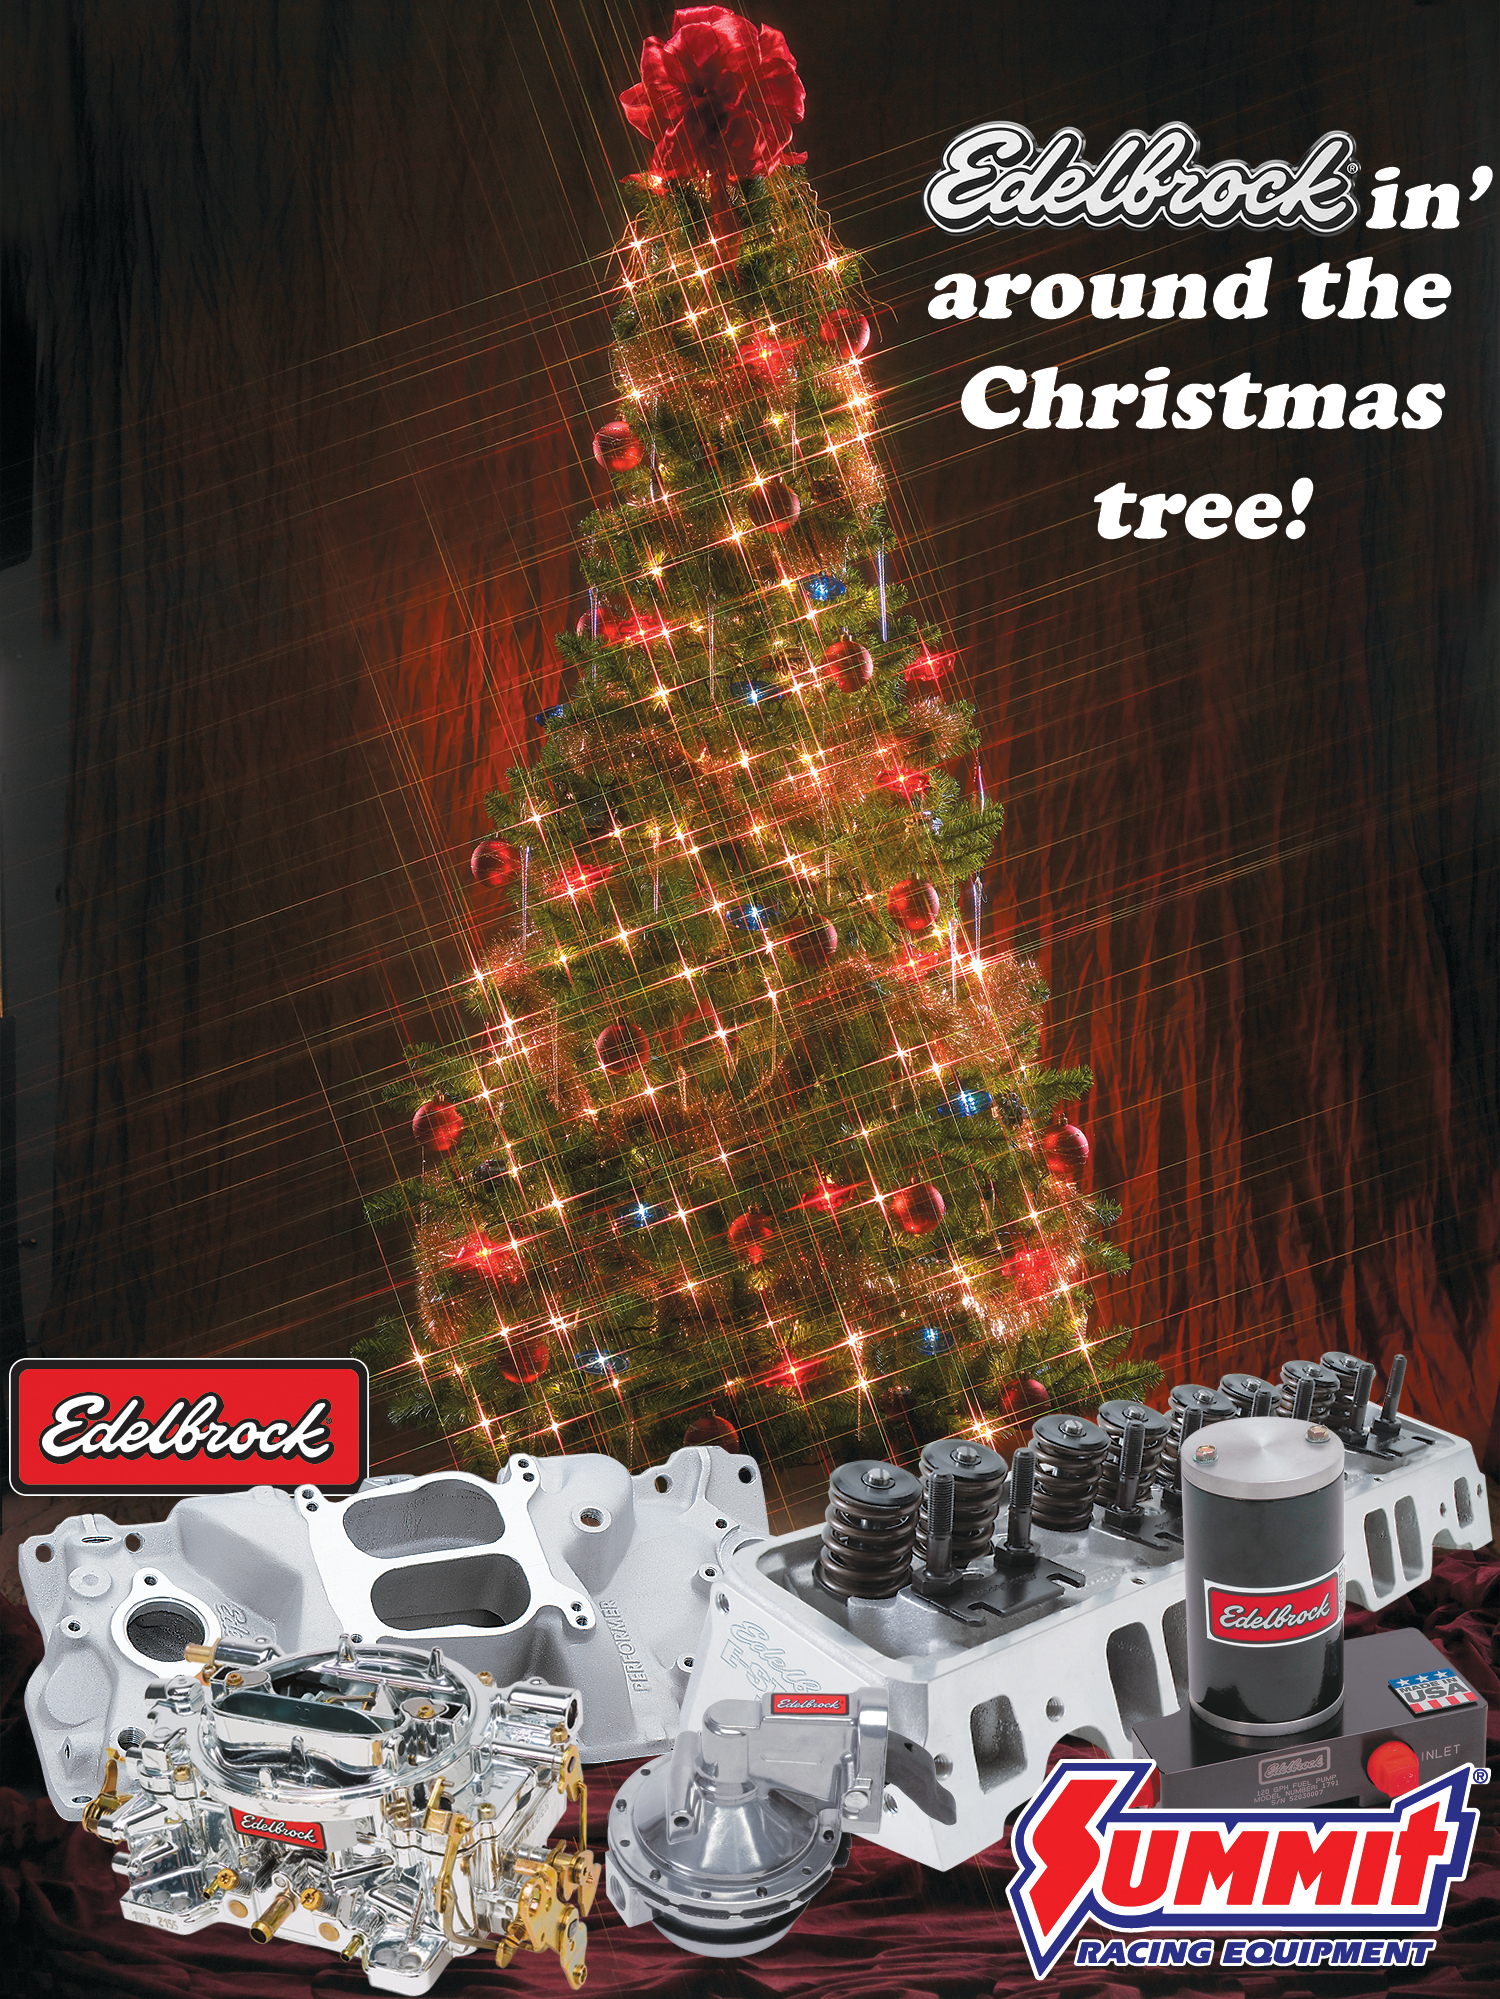 Seasons greetings 8 gearhead friendly greetings for the holidays share this kristyandbryce Images